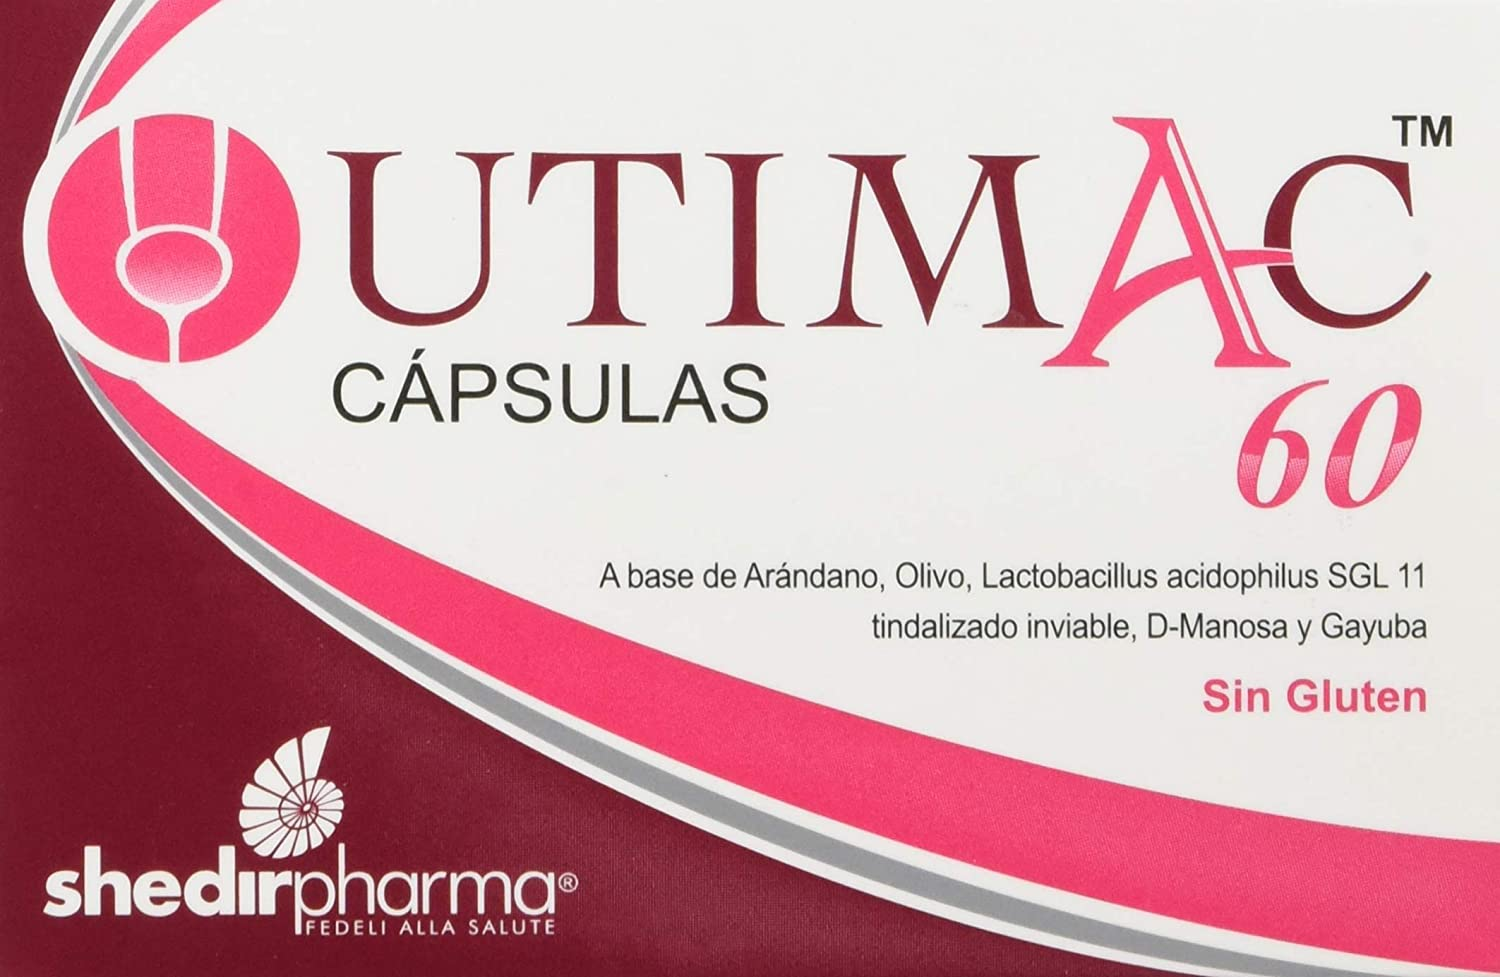 High material UTIMAC 60-14 Caps - Supports Tract Award Boost Urinary Health